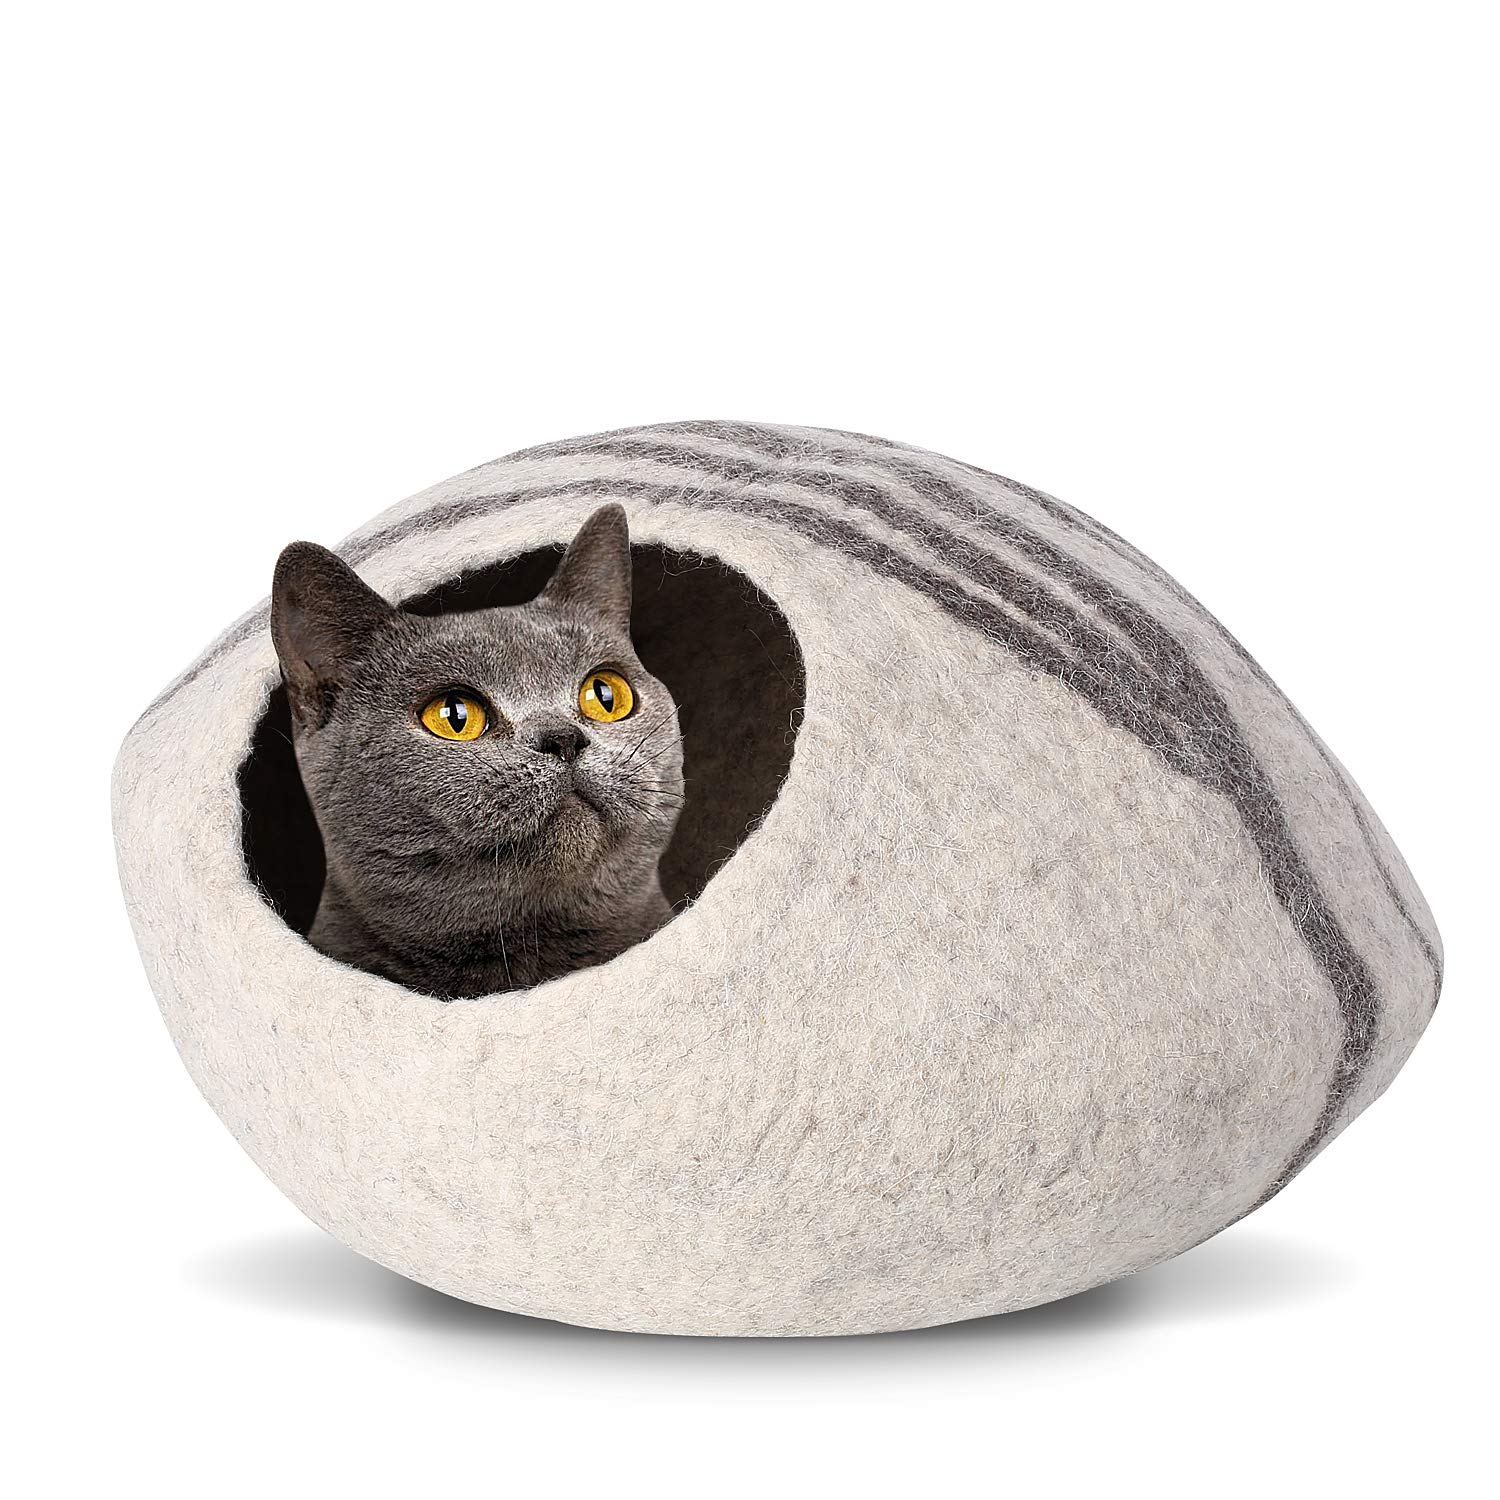 Pedy 19'' Cat Cave Bed Large, Premium Handmade Natural Wool Self Warming Cat Cubby Enclosed for Cats and Kittens by Pedy